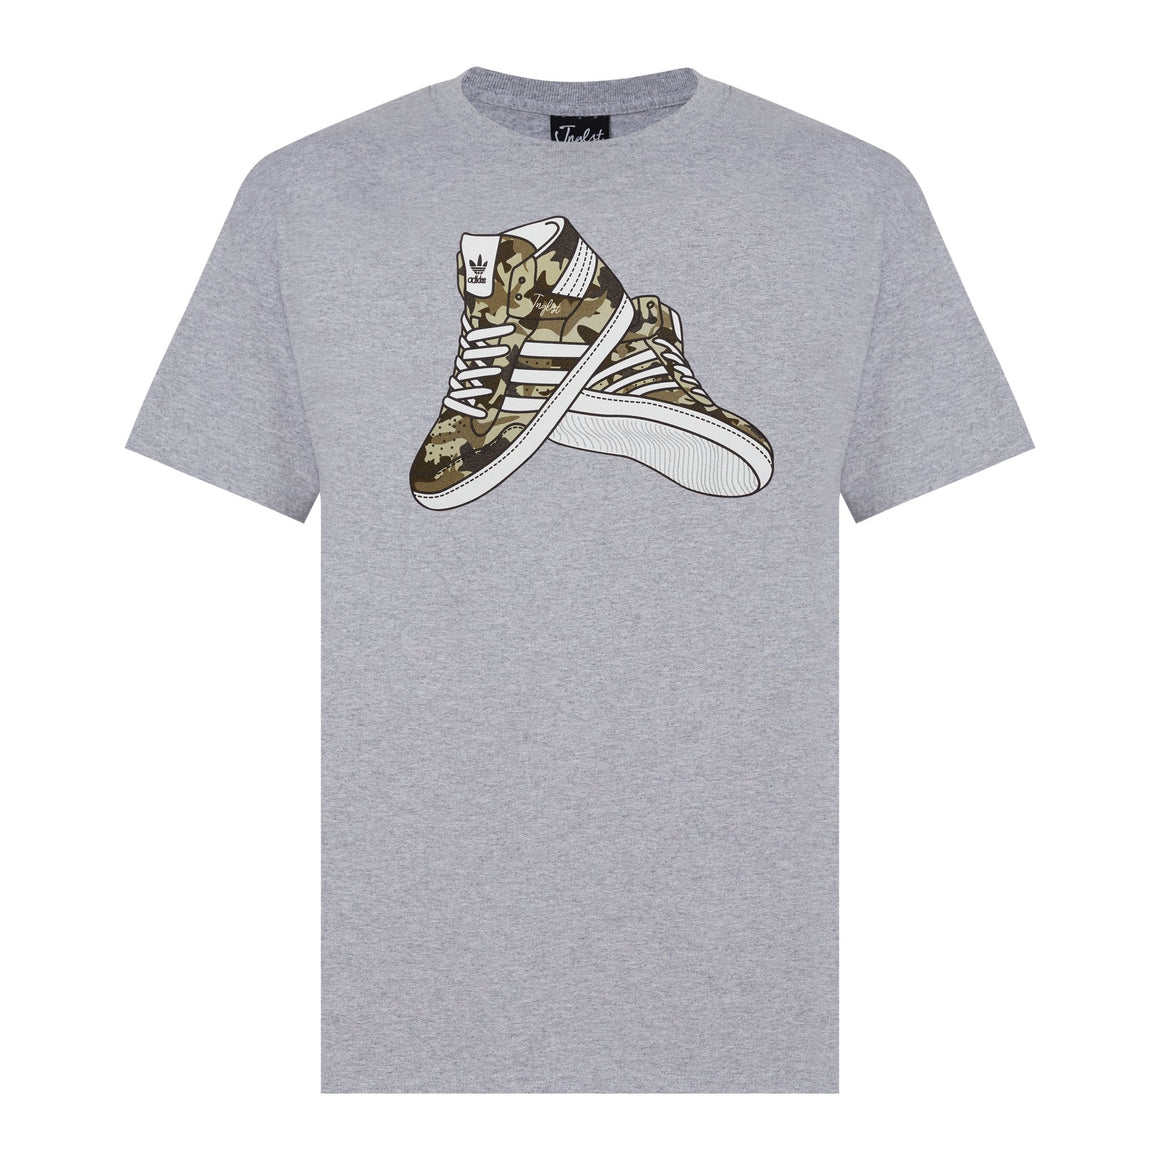 Grey jnglst Trainers tee